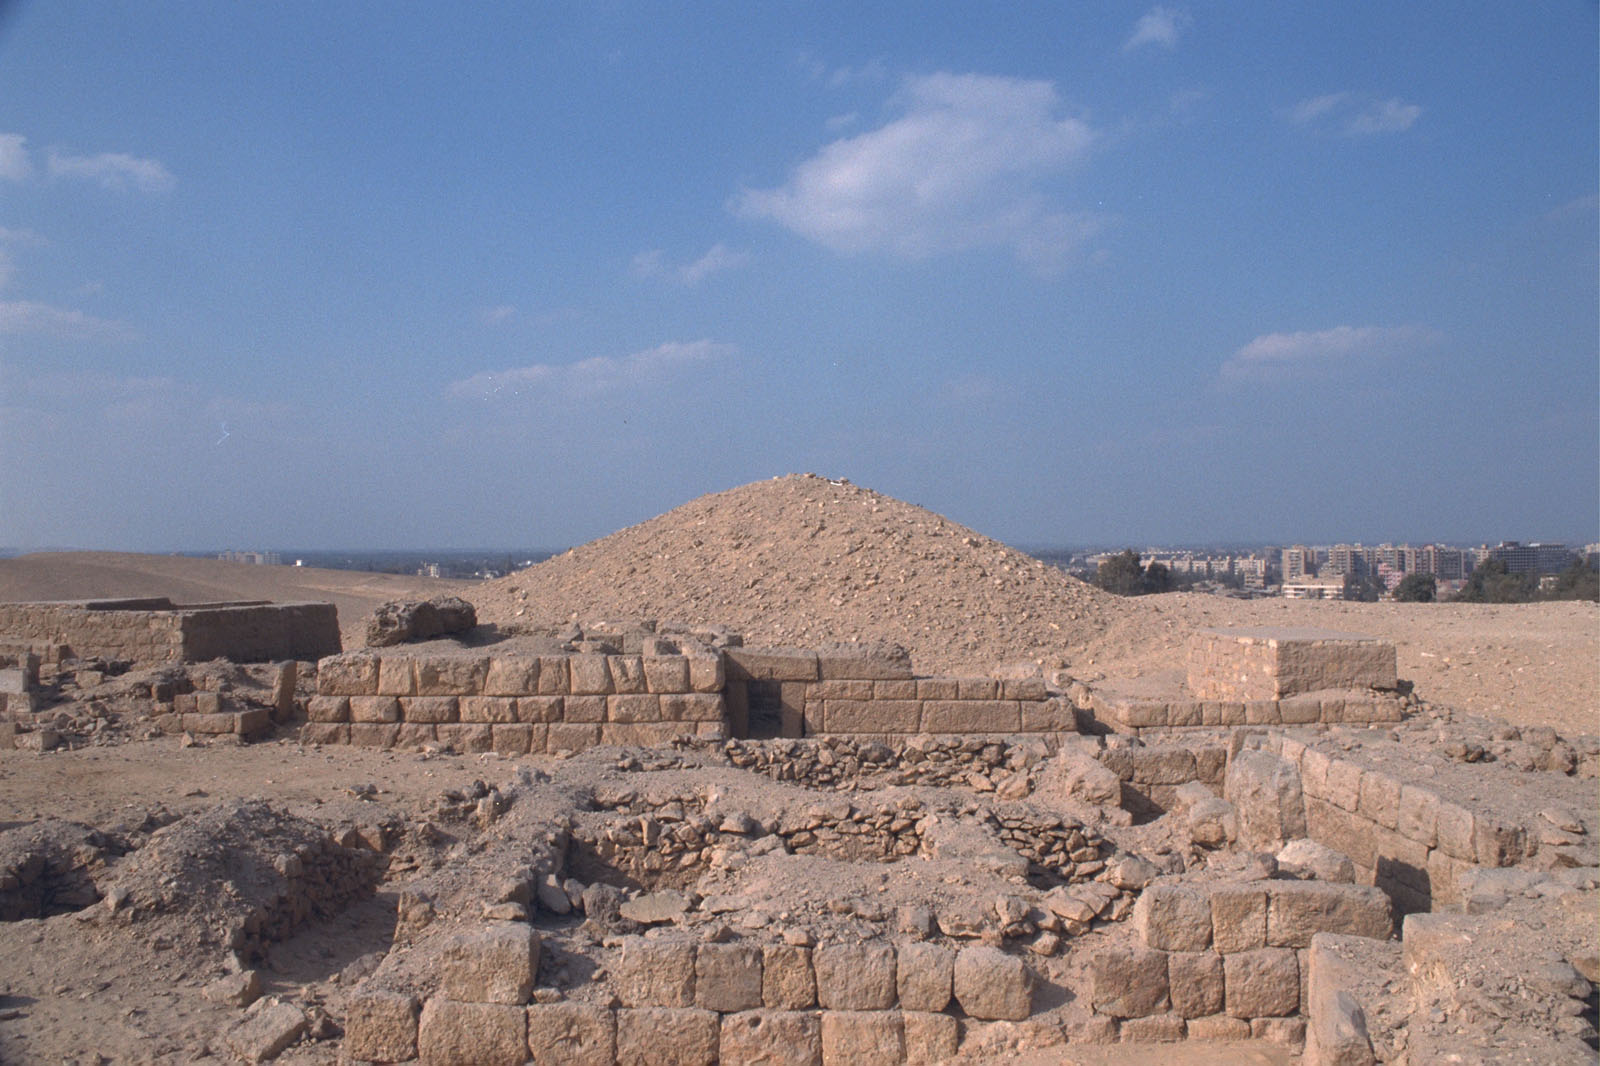 Western Cemetery: Site: Giza; View: G 2071, G 2236, G 2235, G 2234, G 2230, G 2084